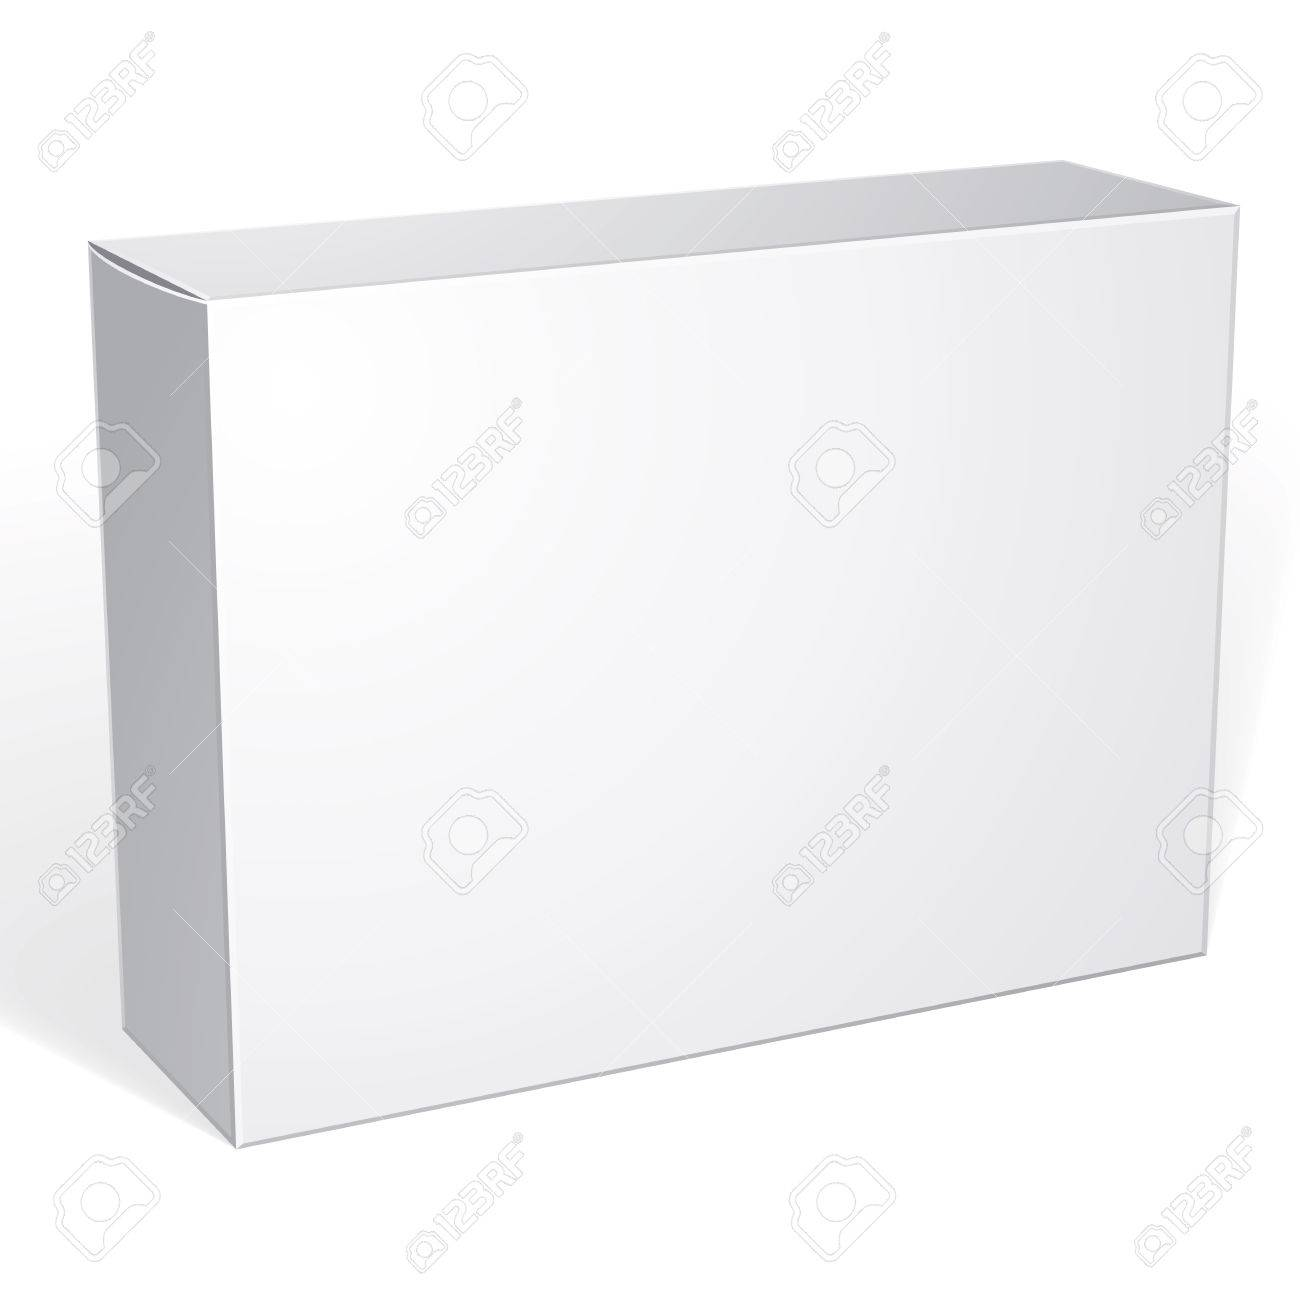 Package white box design isolated on white background, template for your package design, put your image over the box in multiply mode - 43235997